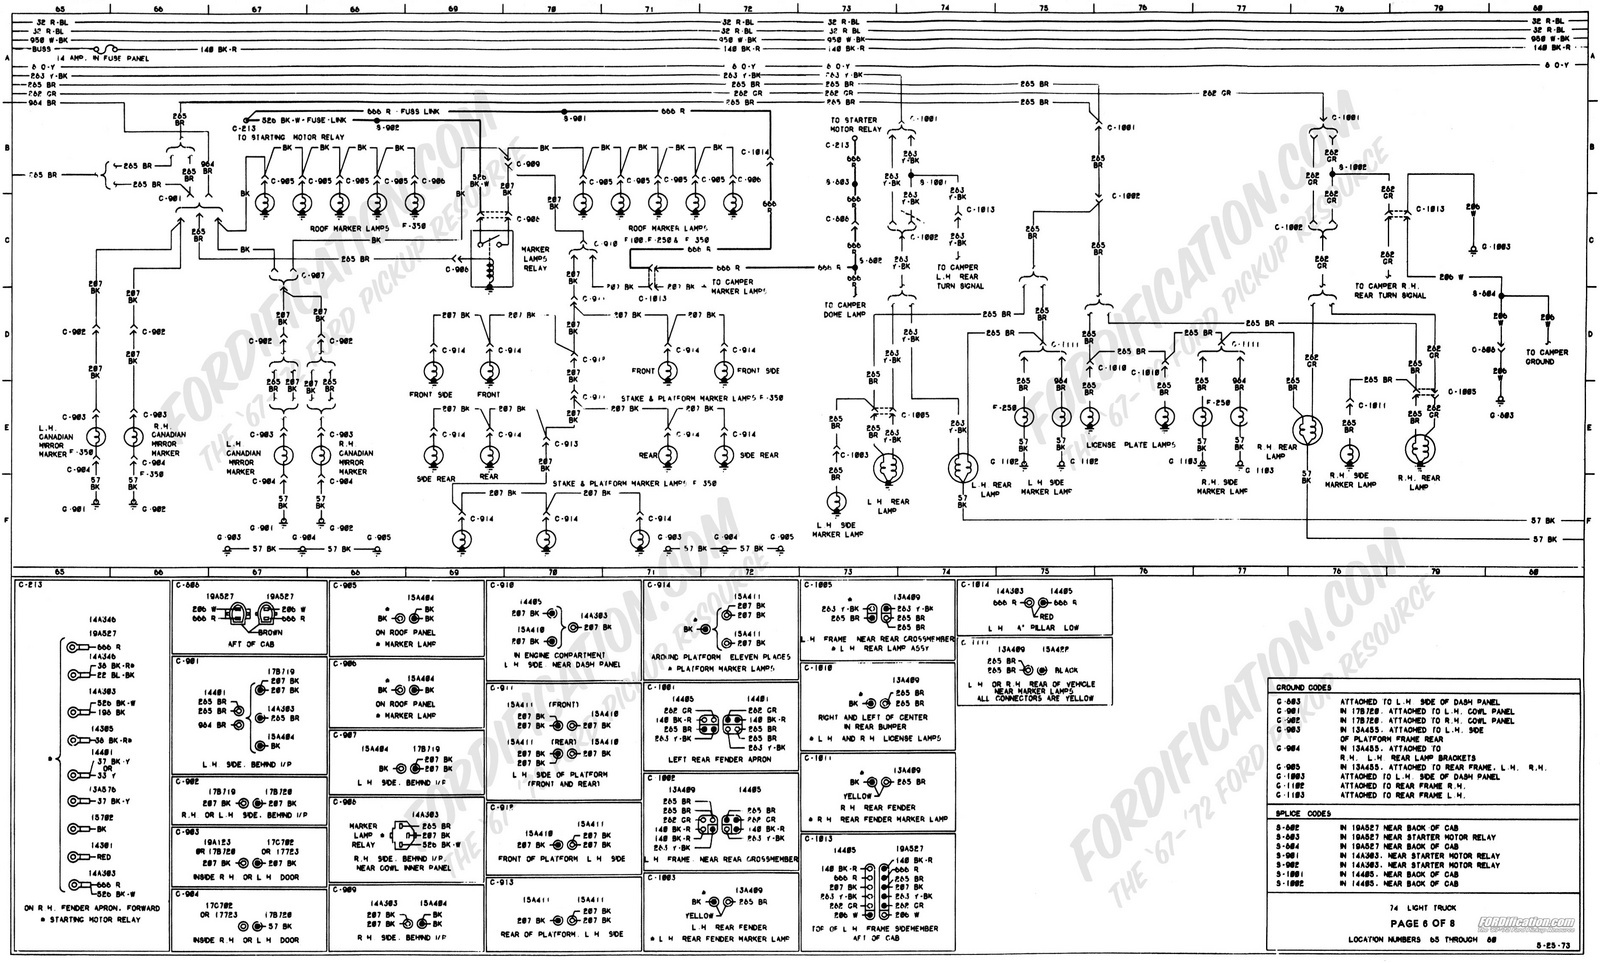 Tail Light Wiring Diagram Ford F150 from static.cargurus.com